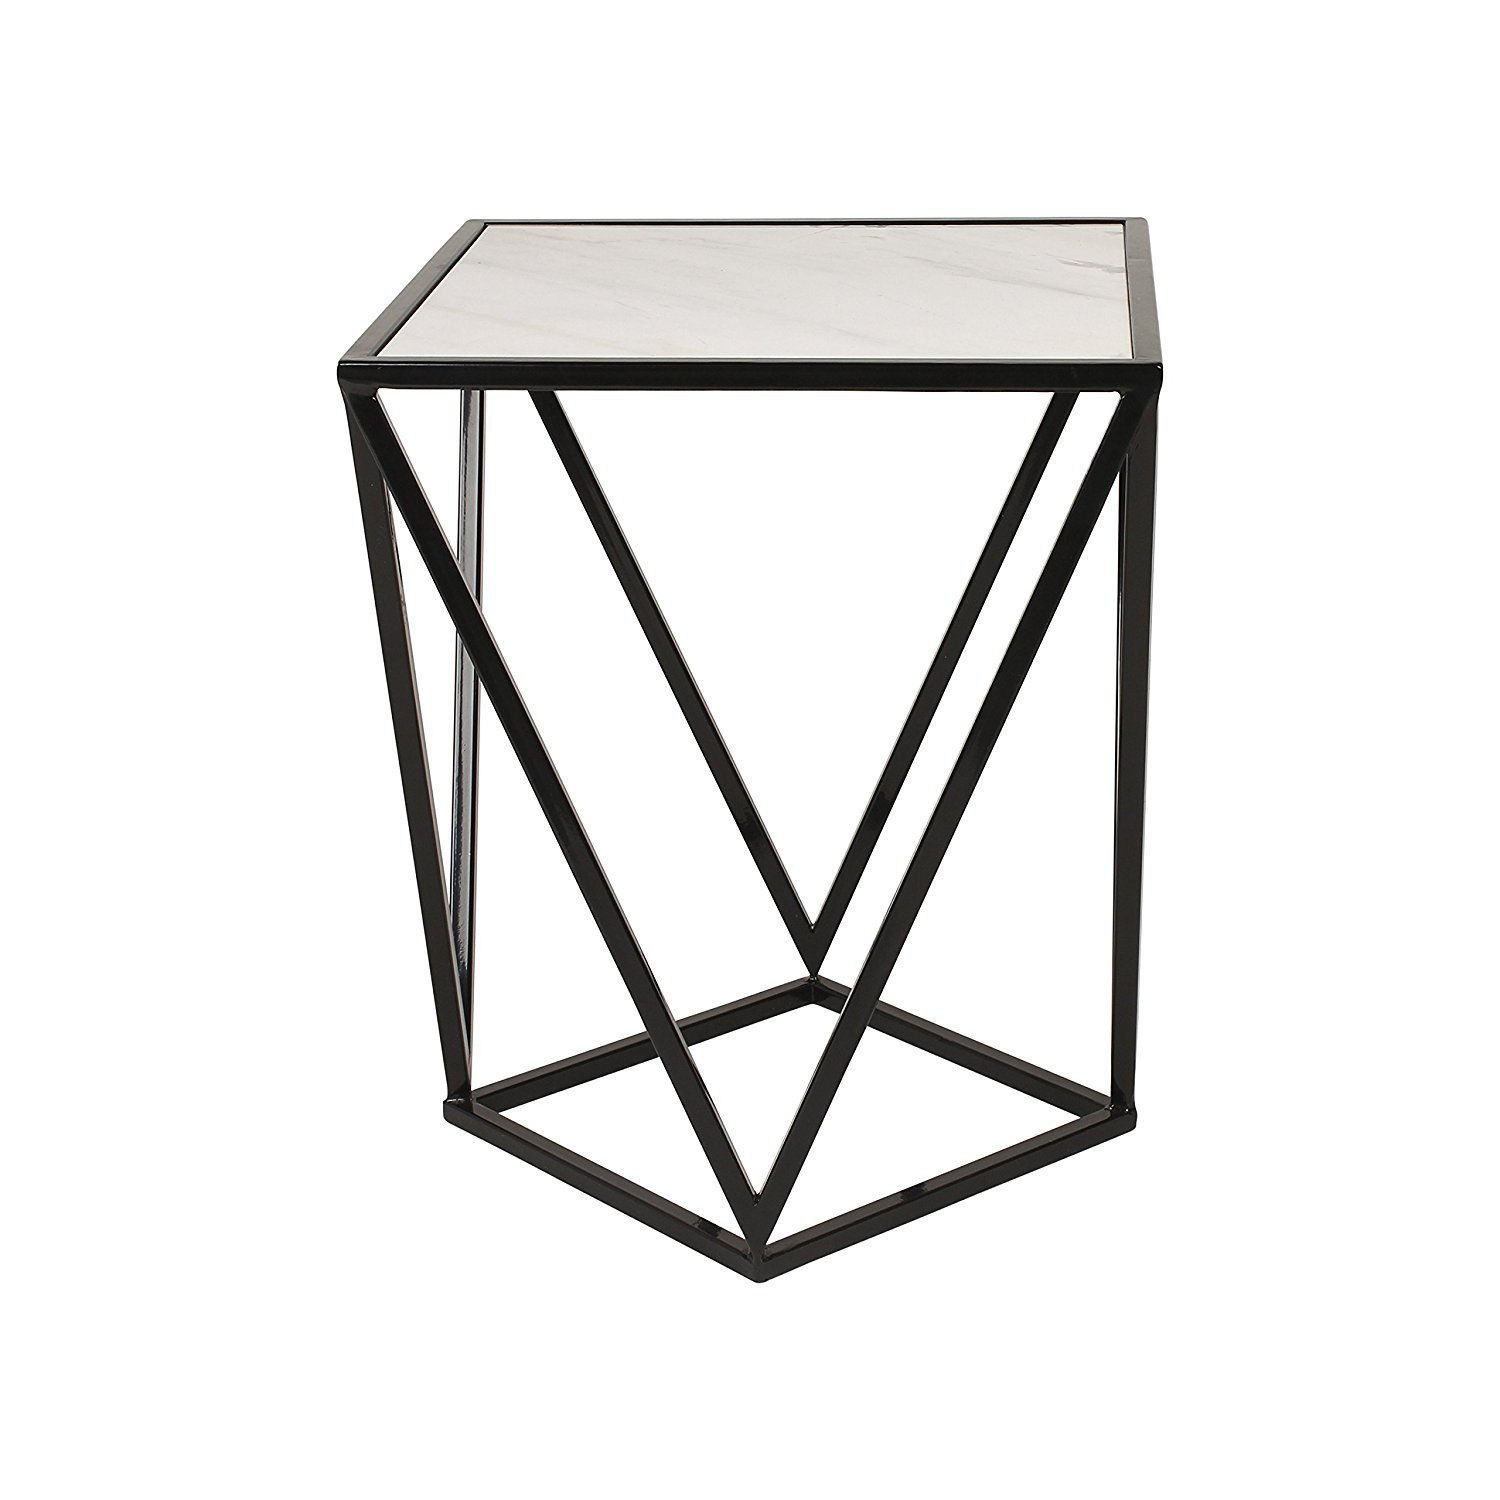 coffeetable black metal side accent table with marble top ija cement outdoor dining round pedestal wood half coffee solid laminate threshold small console storage antique room